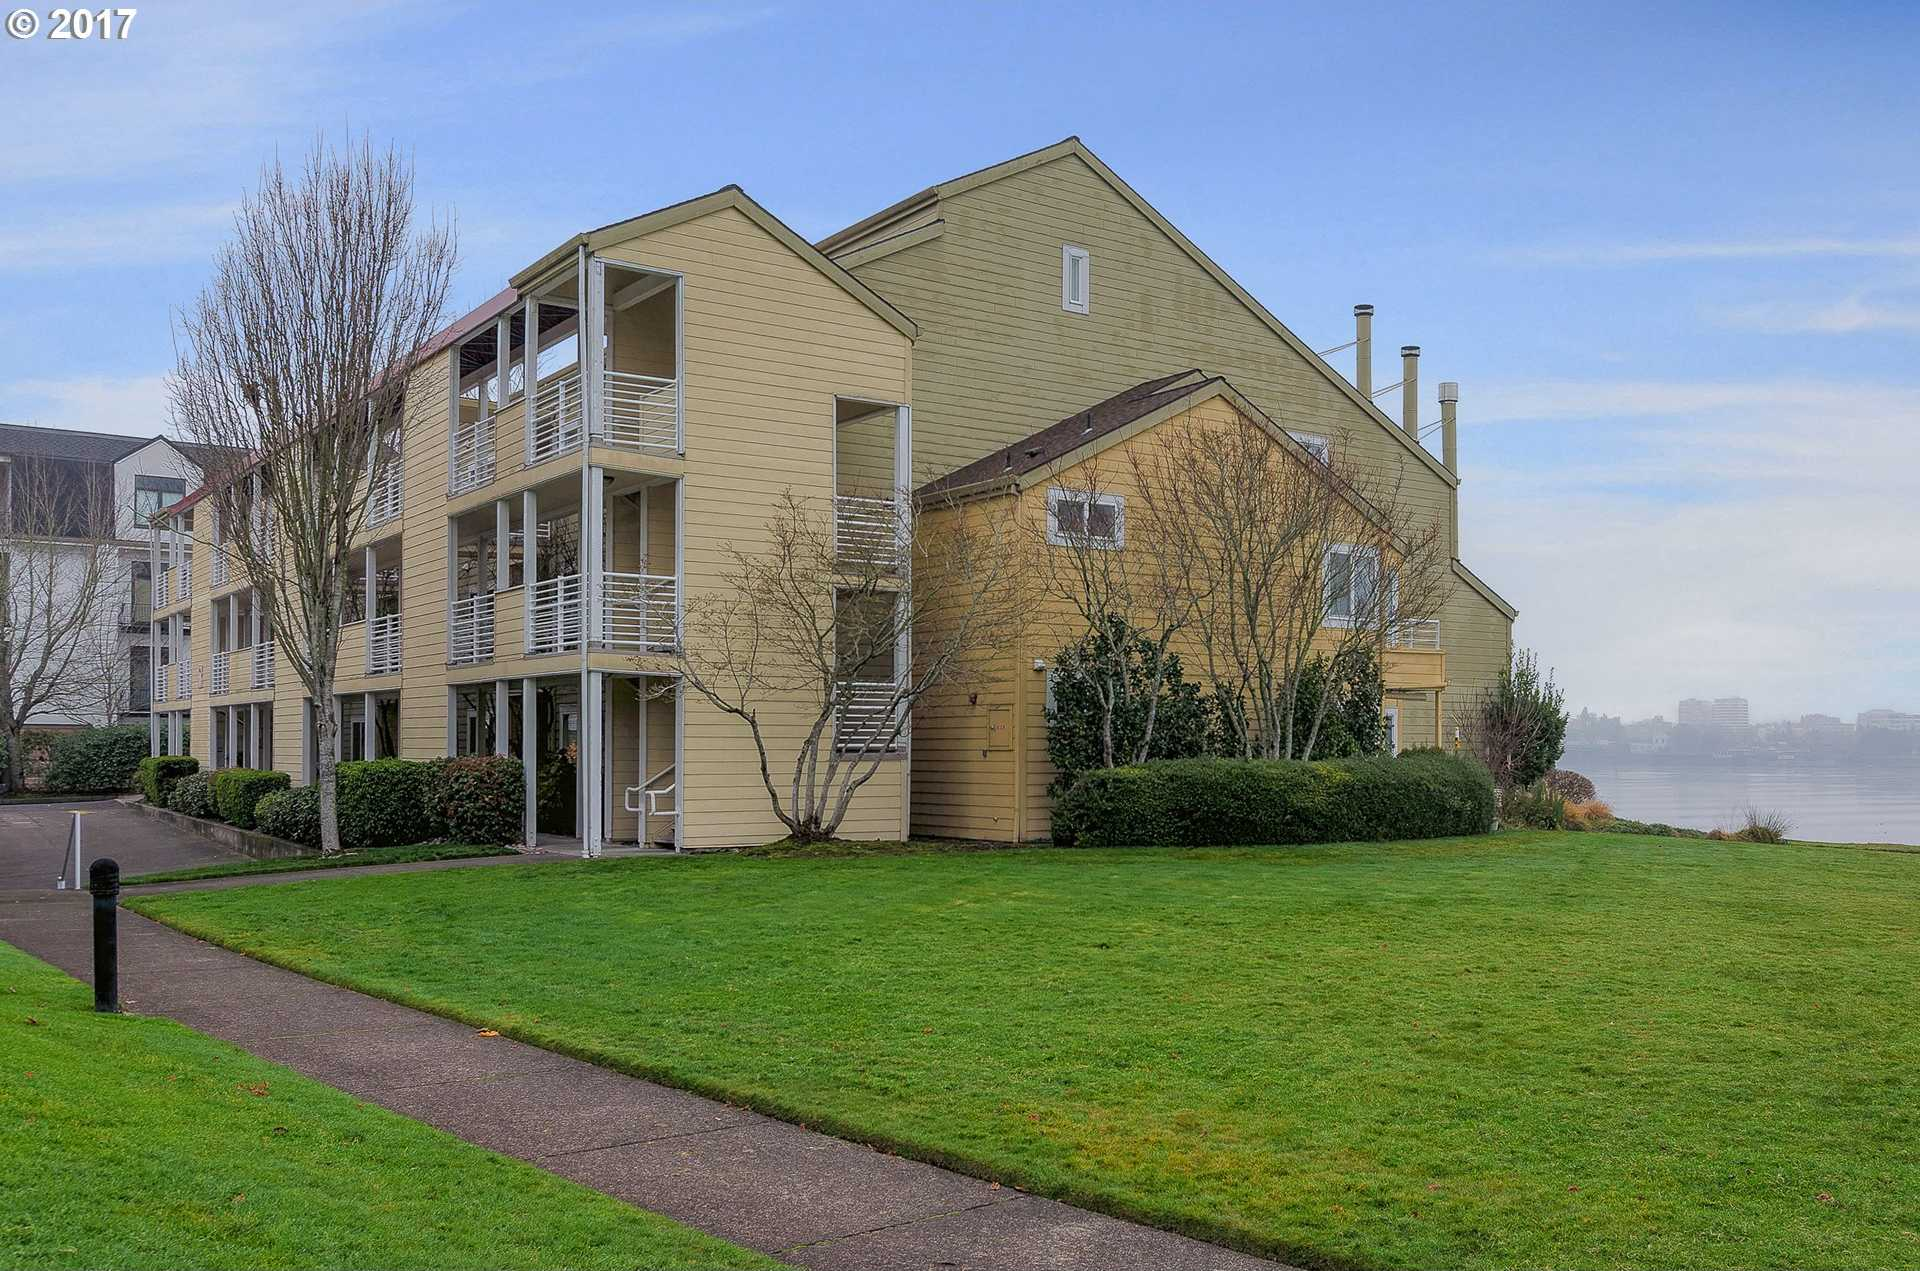 $200,000 - 1Br/1Ba -  for Sale in Columbia Point West Condos, Portland